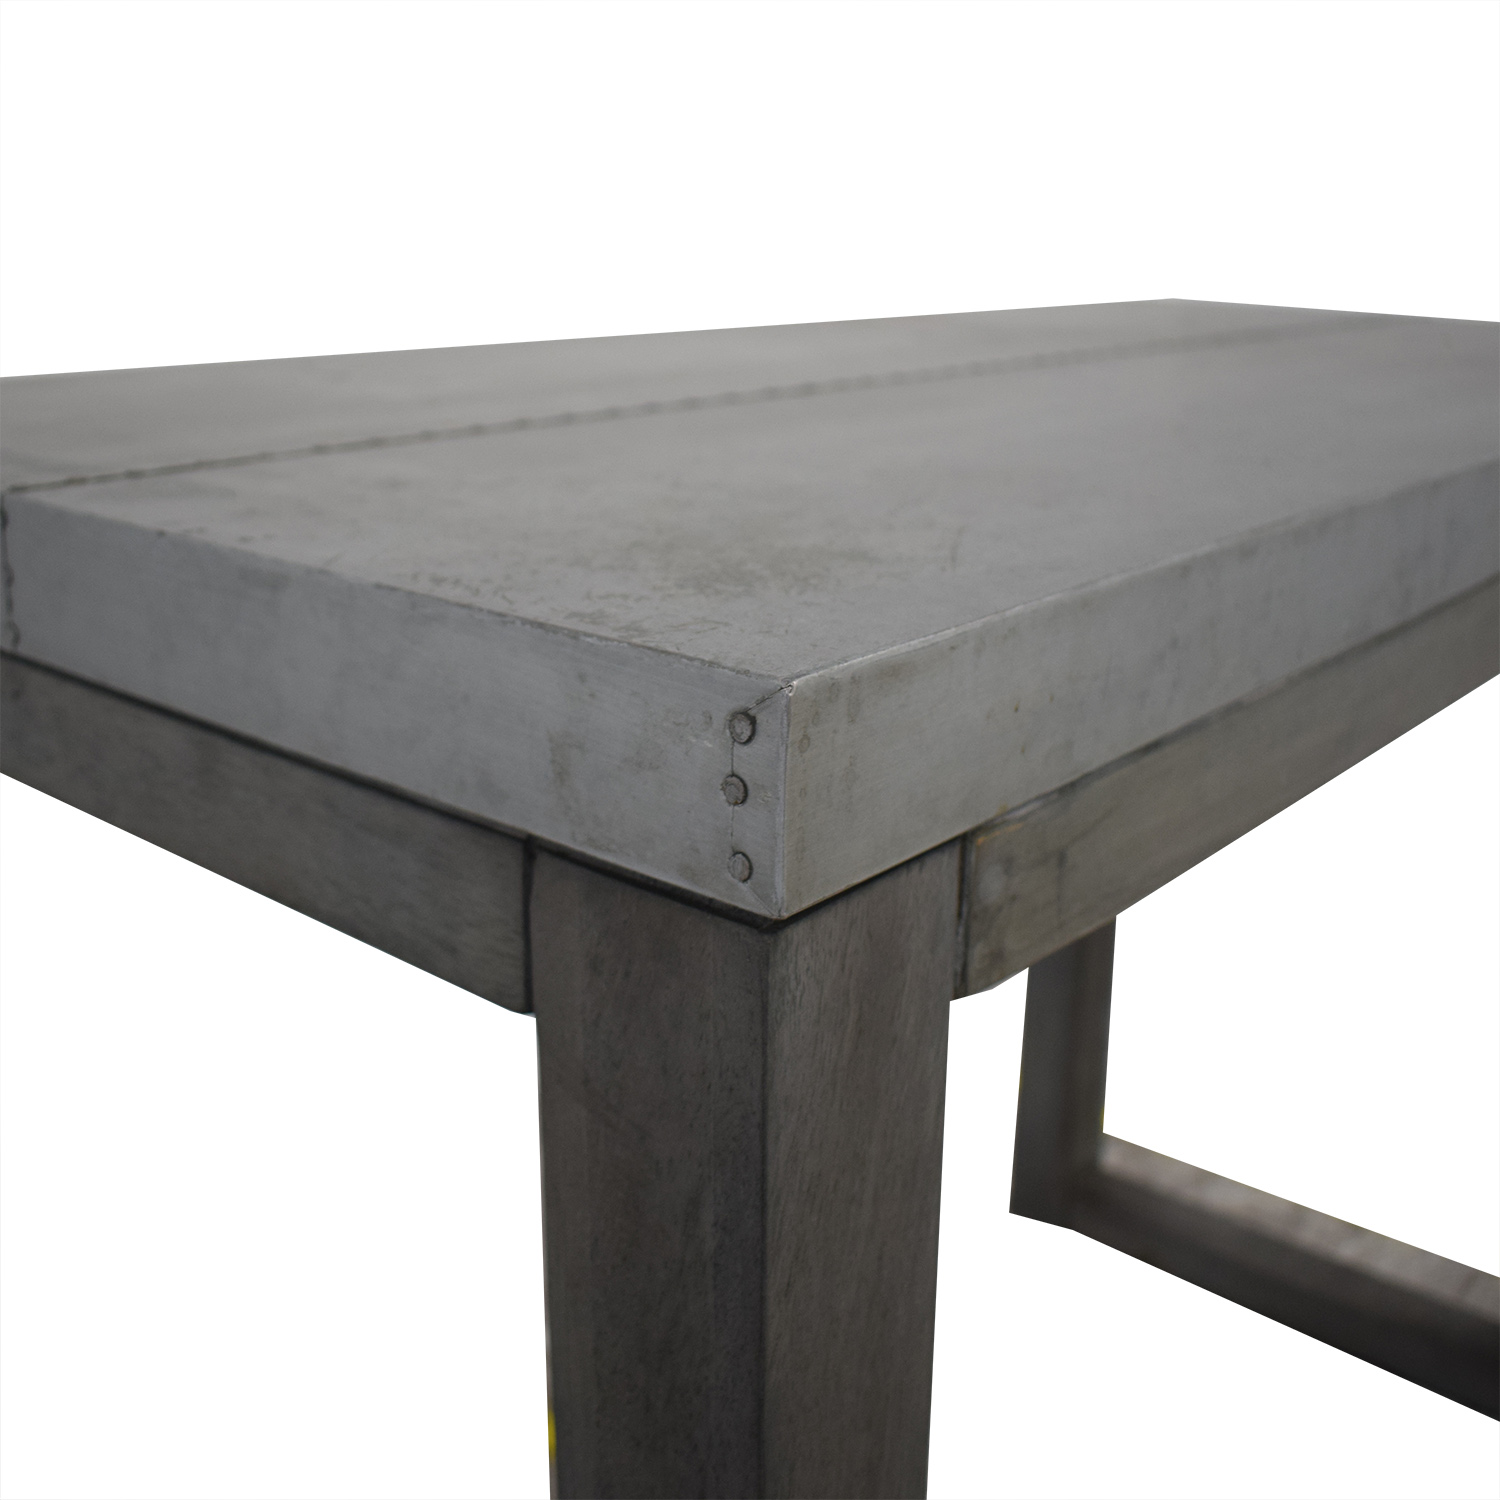 CB2 CB2 Steel Top Table second hand